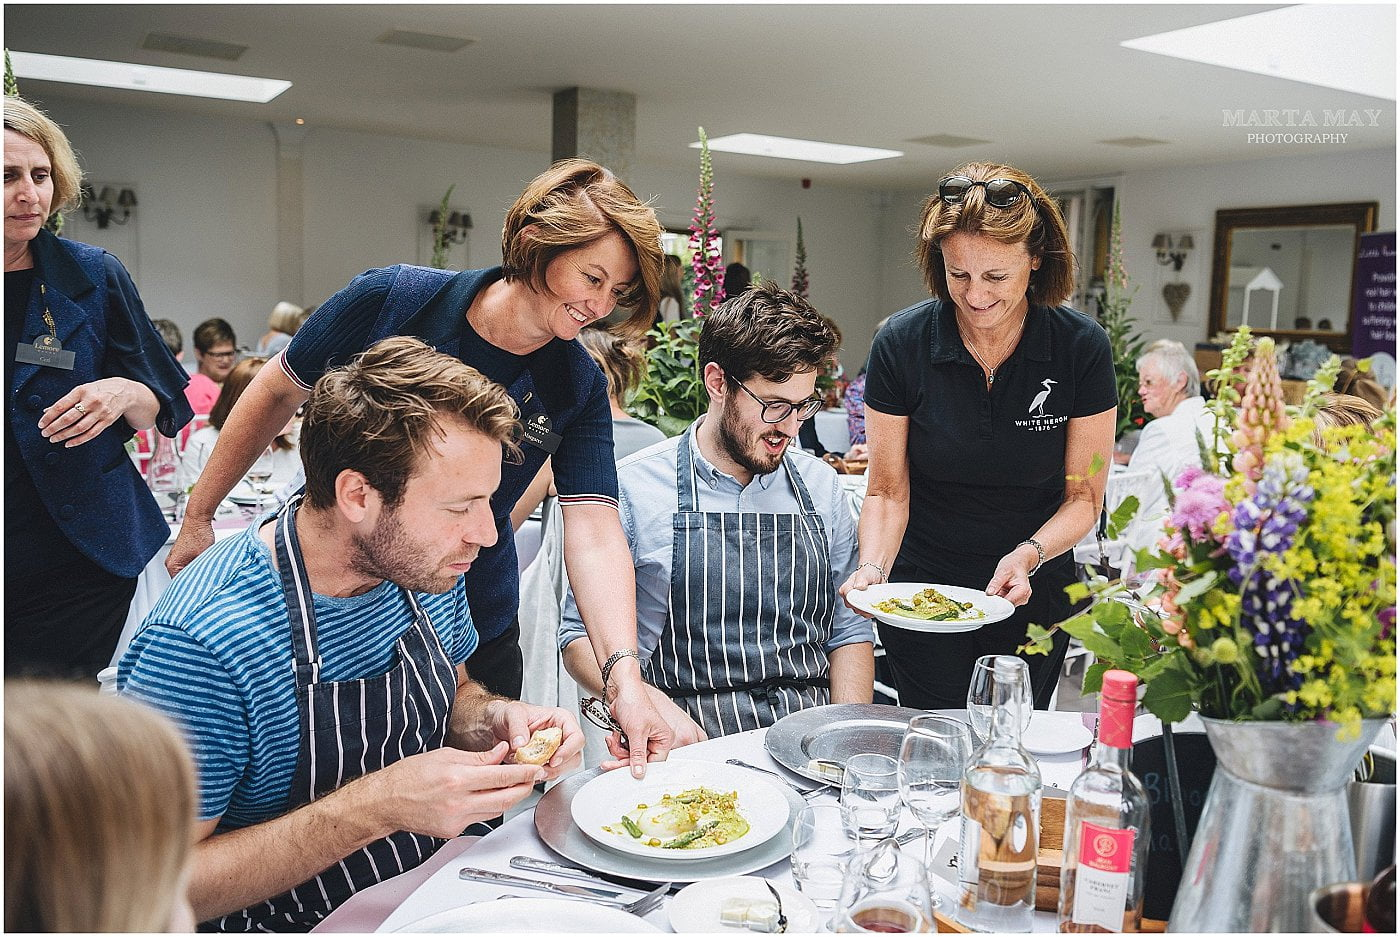 Herefordshire event photography Billy and Jack cookery